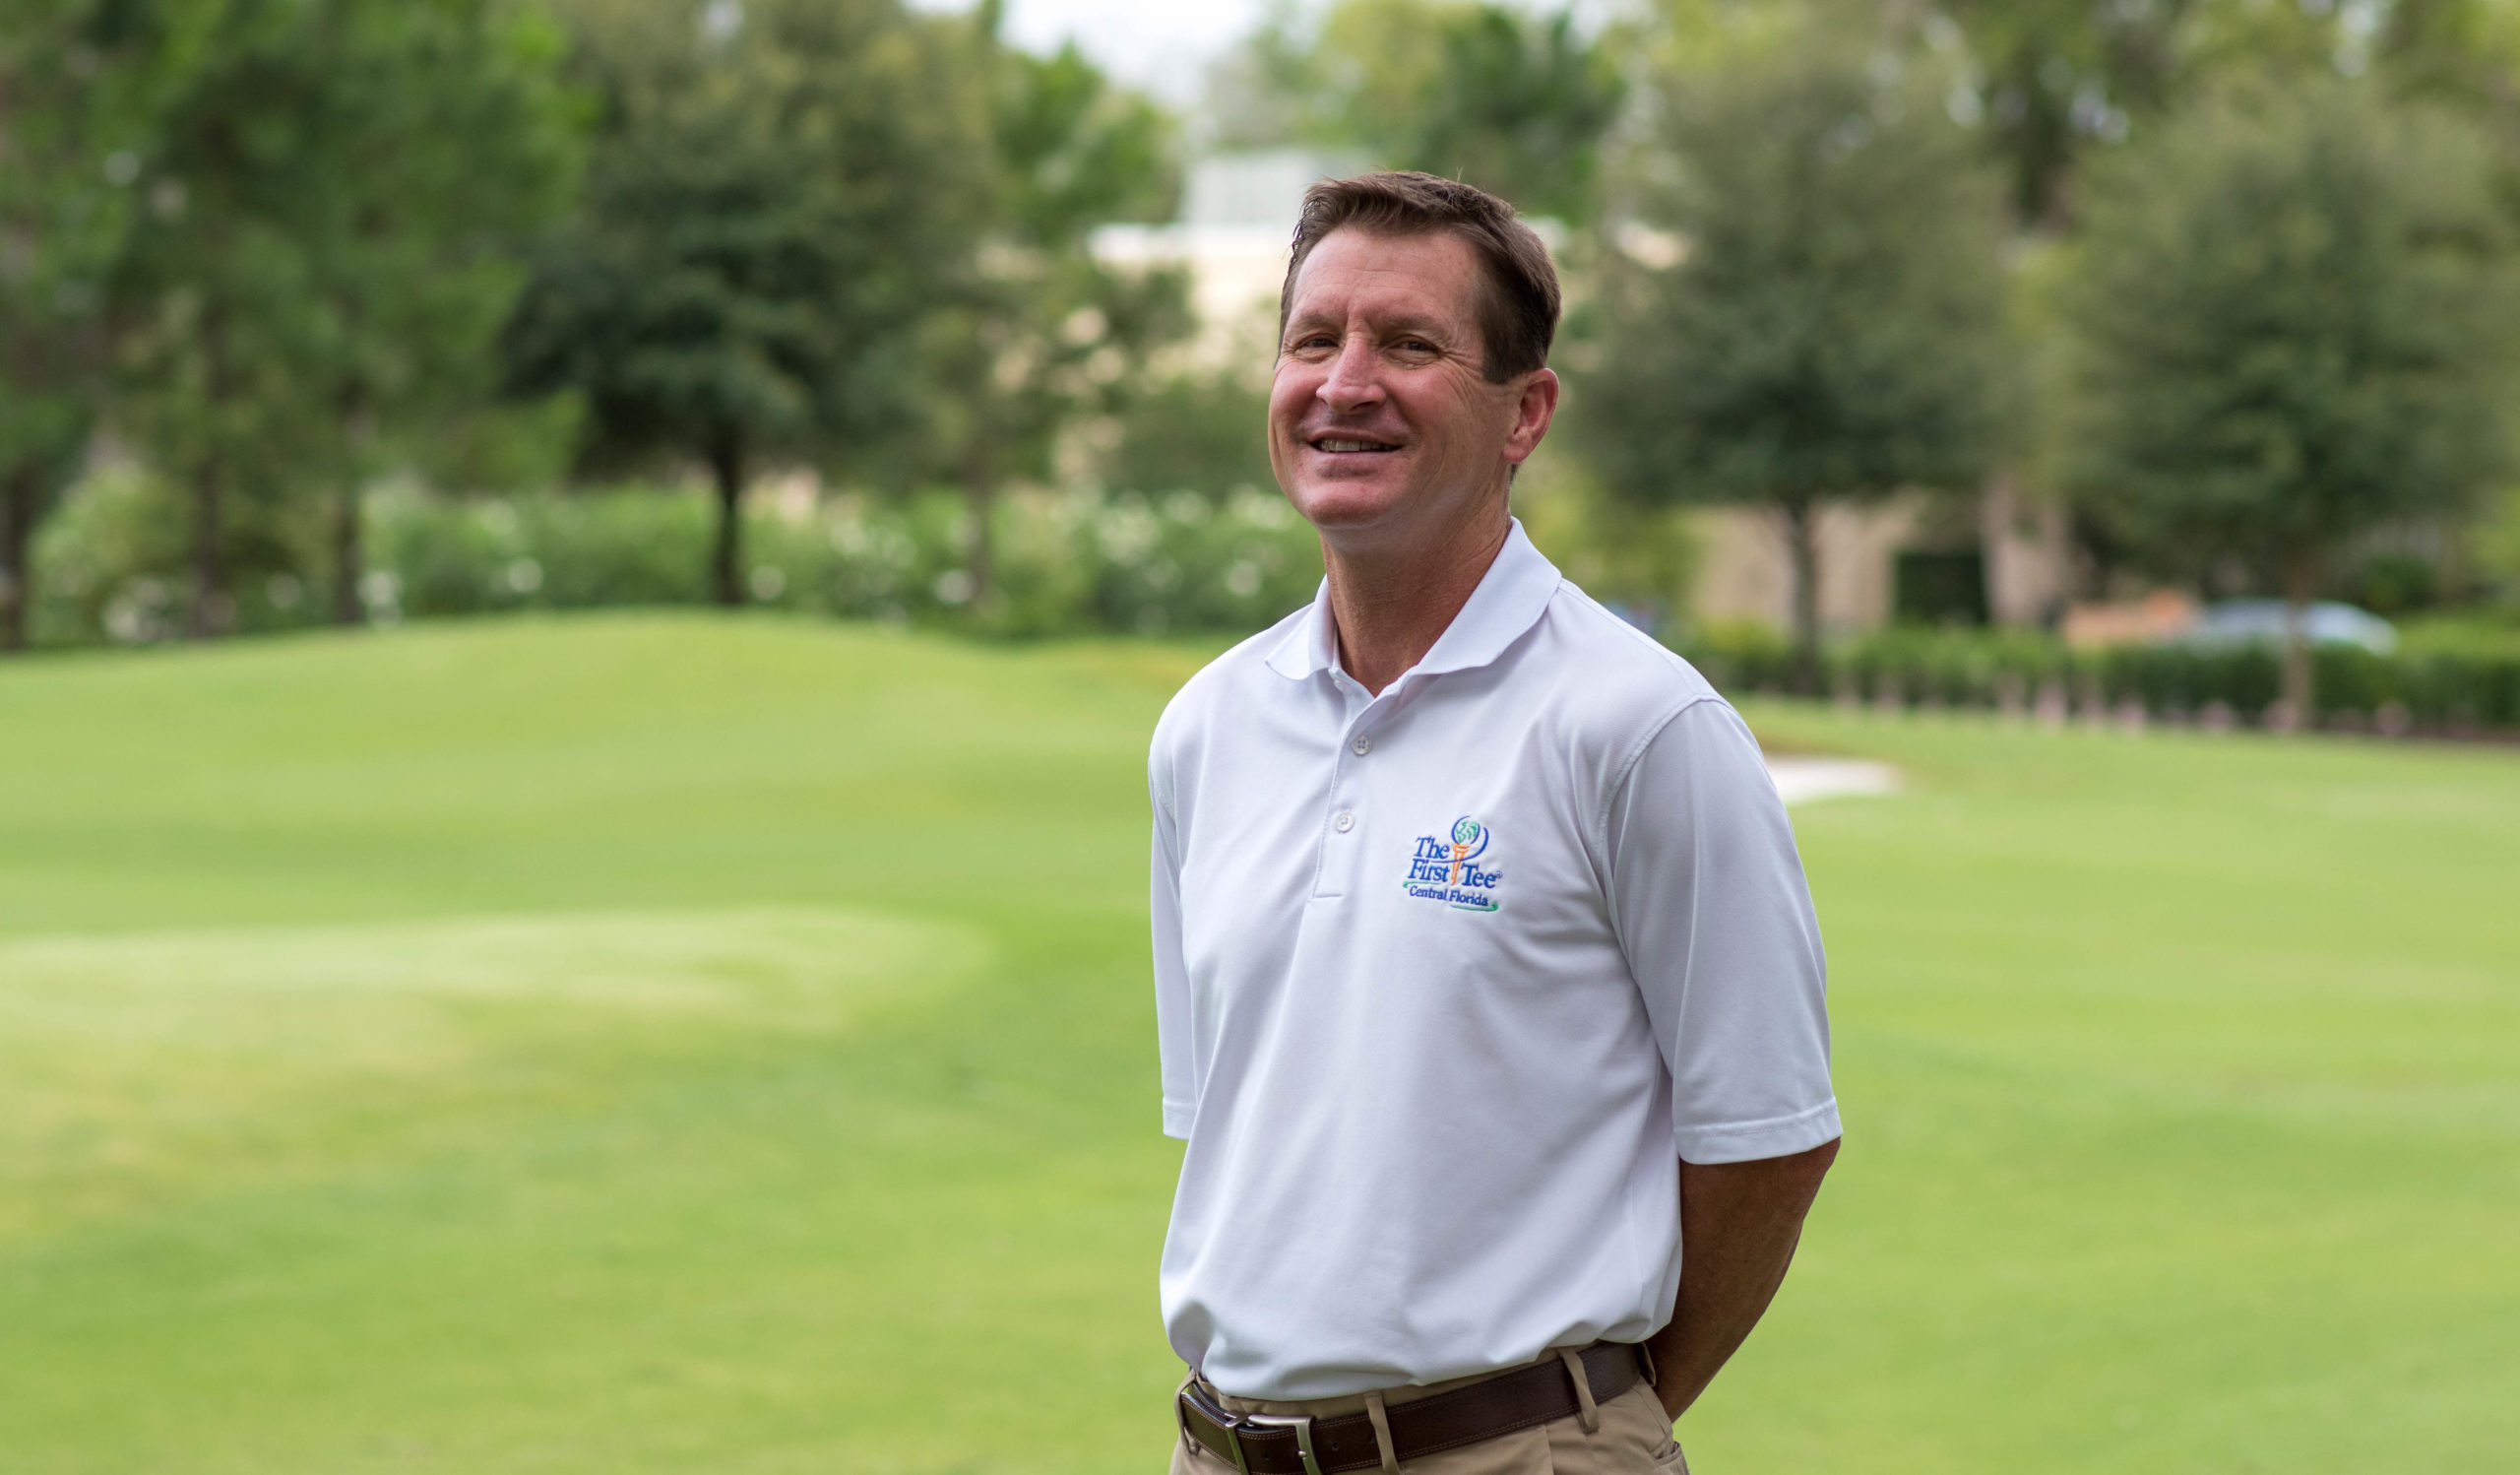 Scott Spragg pictured on the Winter Park Golf Course.